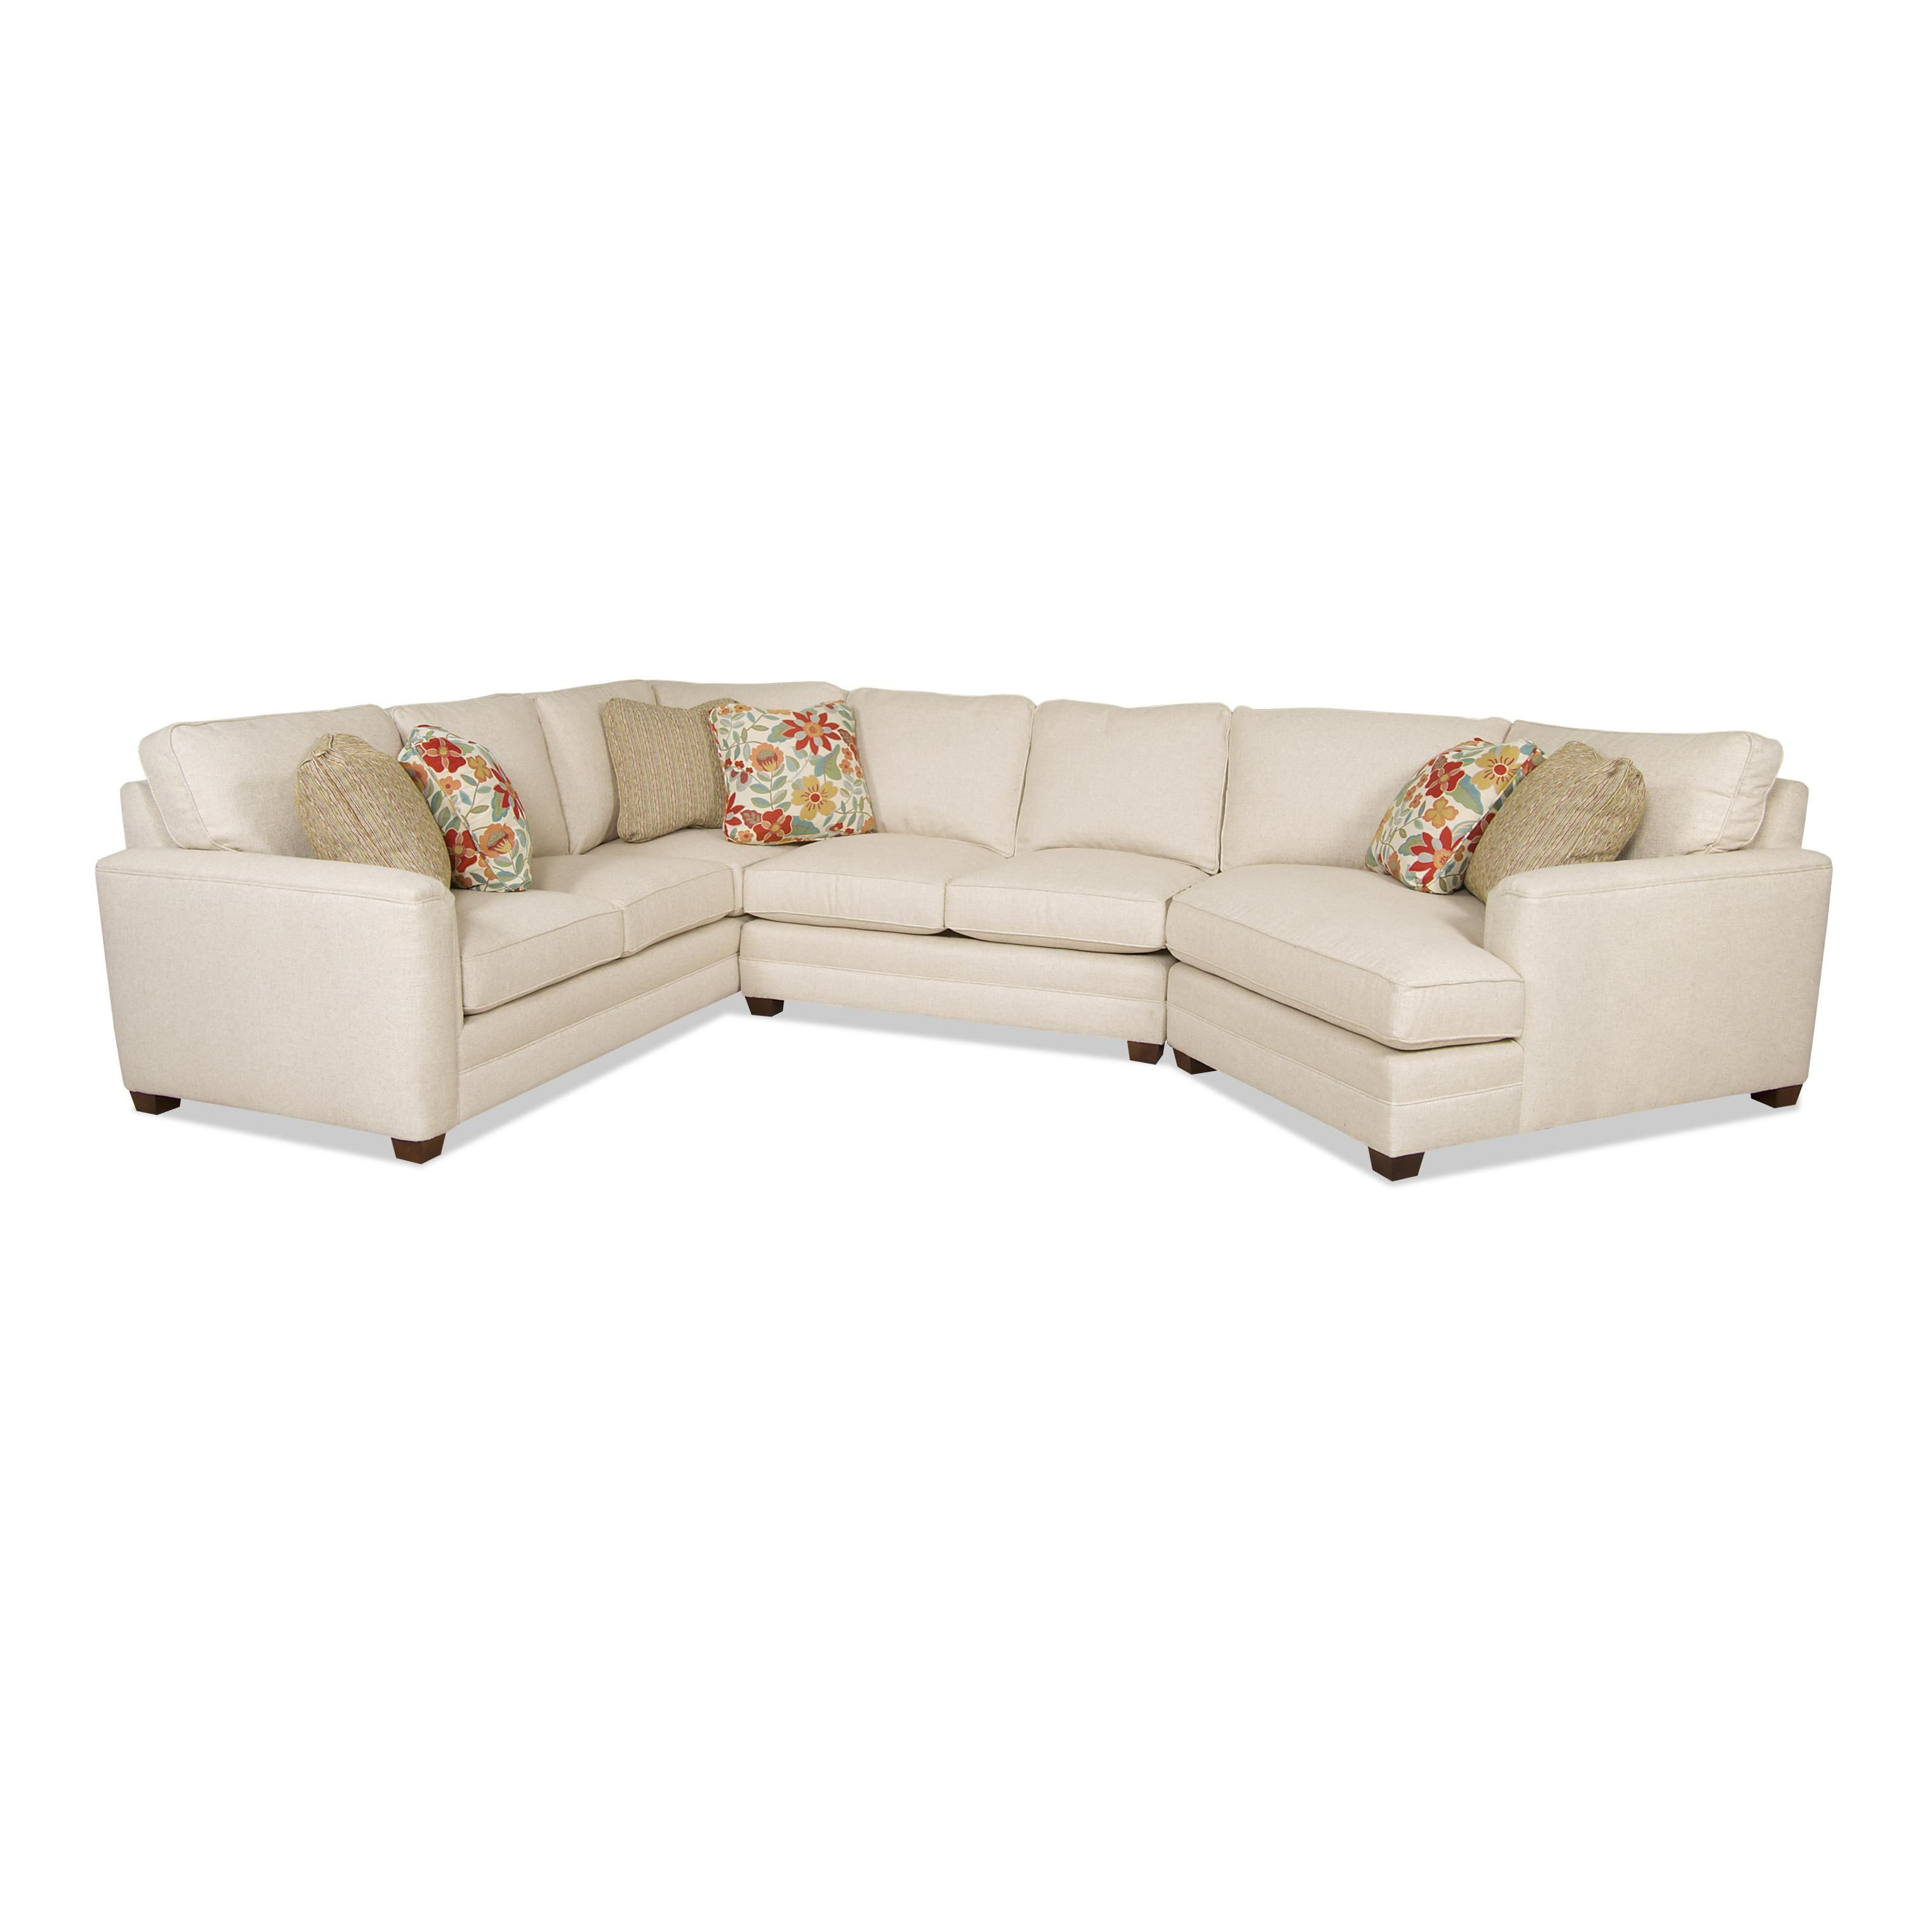 Transitional Sectional Sofa another right side coddler piece